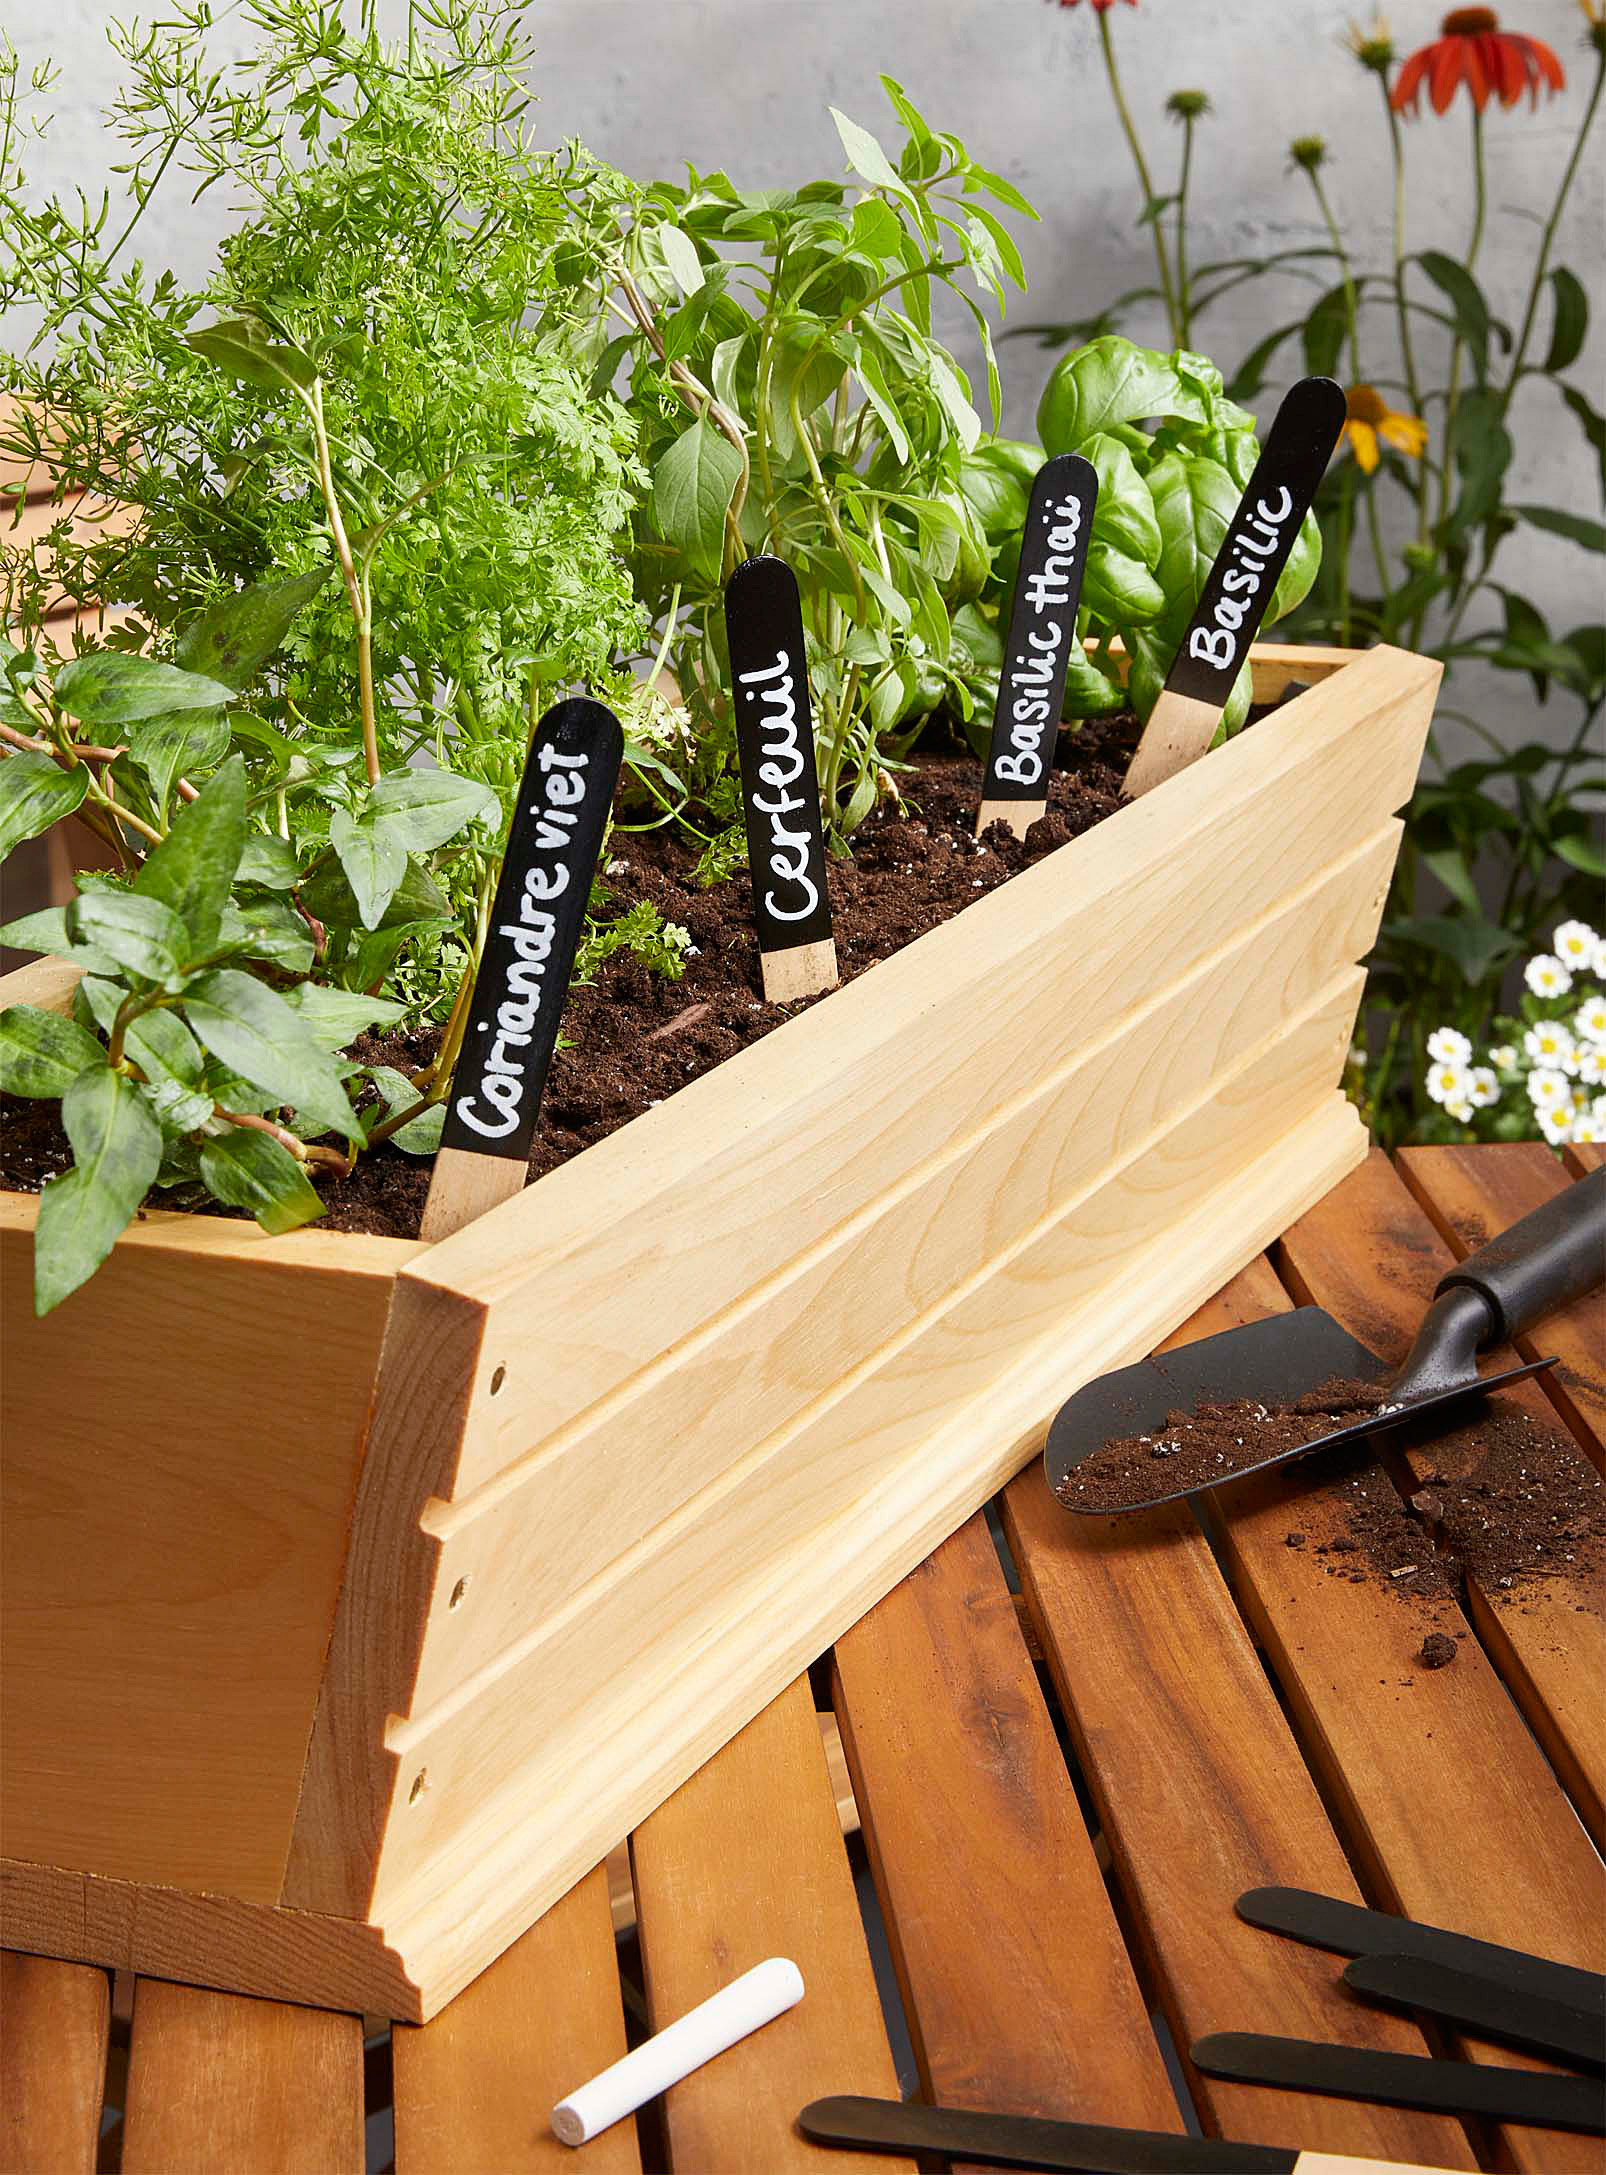 A small garden plot labelled popsicles sticks next to four growing plants